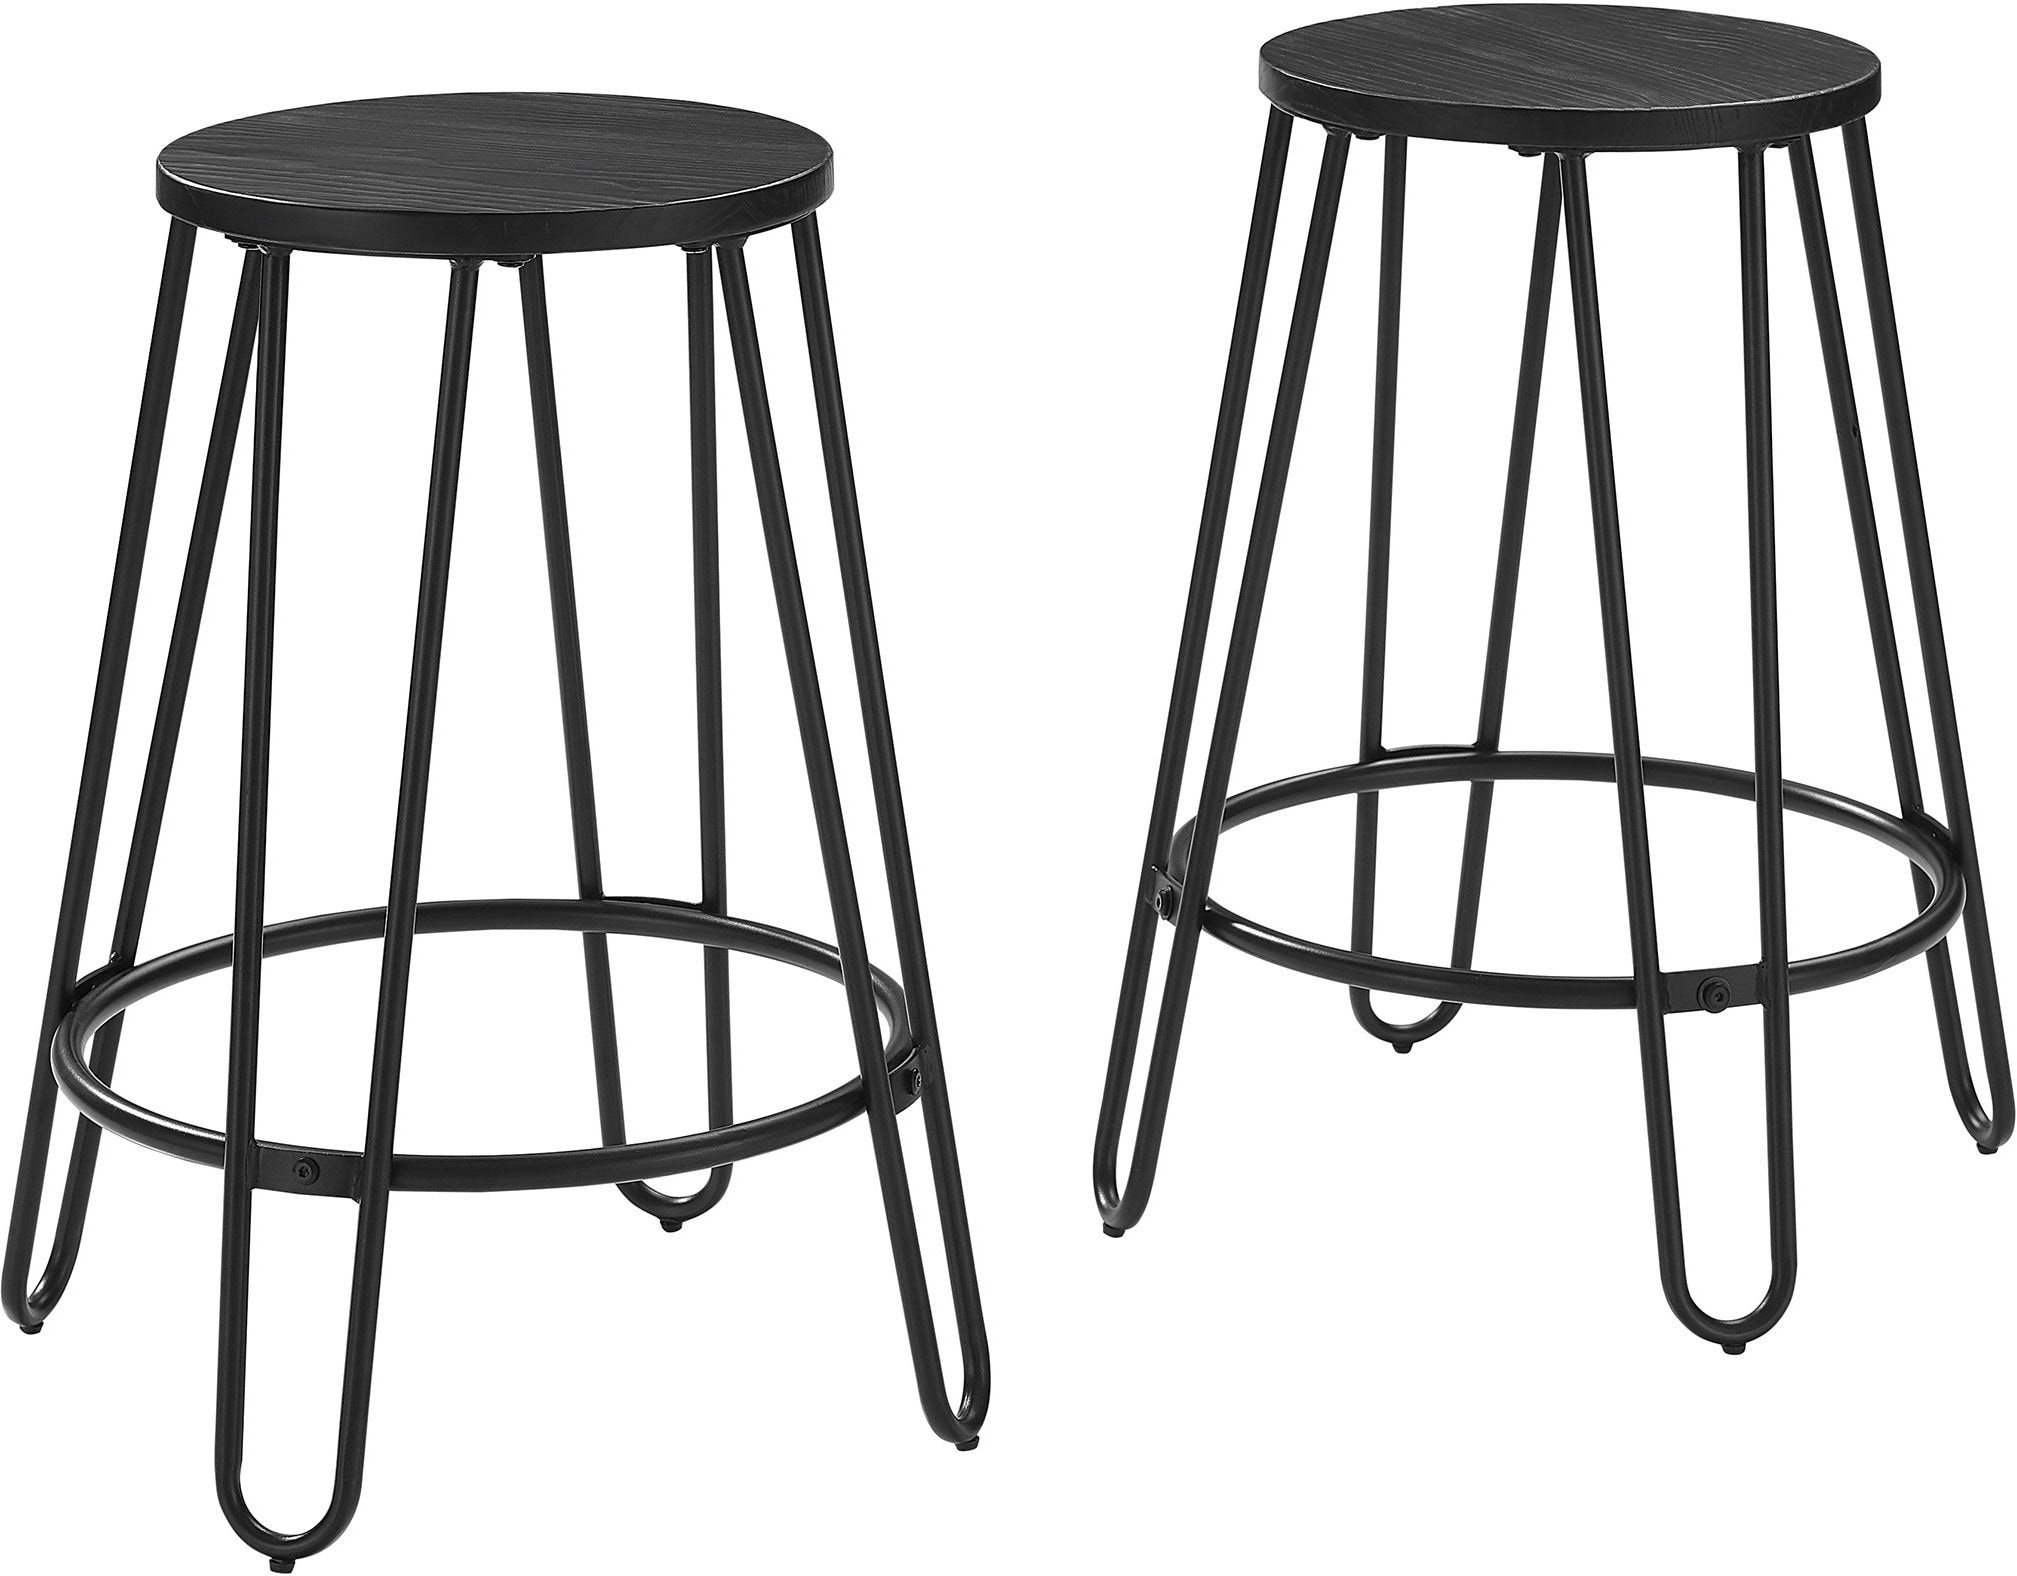 Dining Room Furniture - Sami Set of 2 Counter-Height Stools